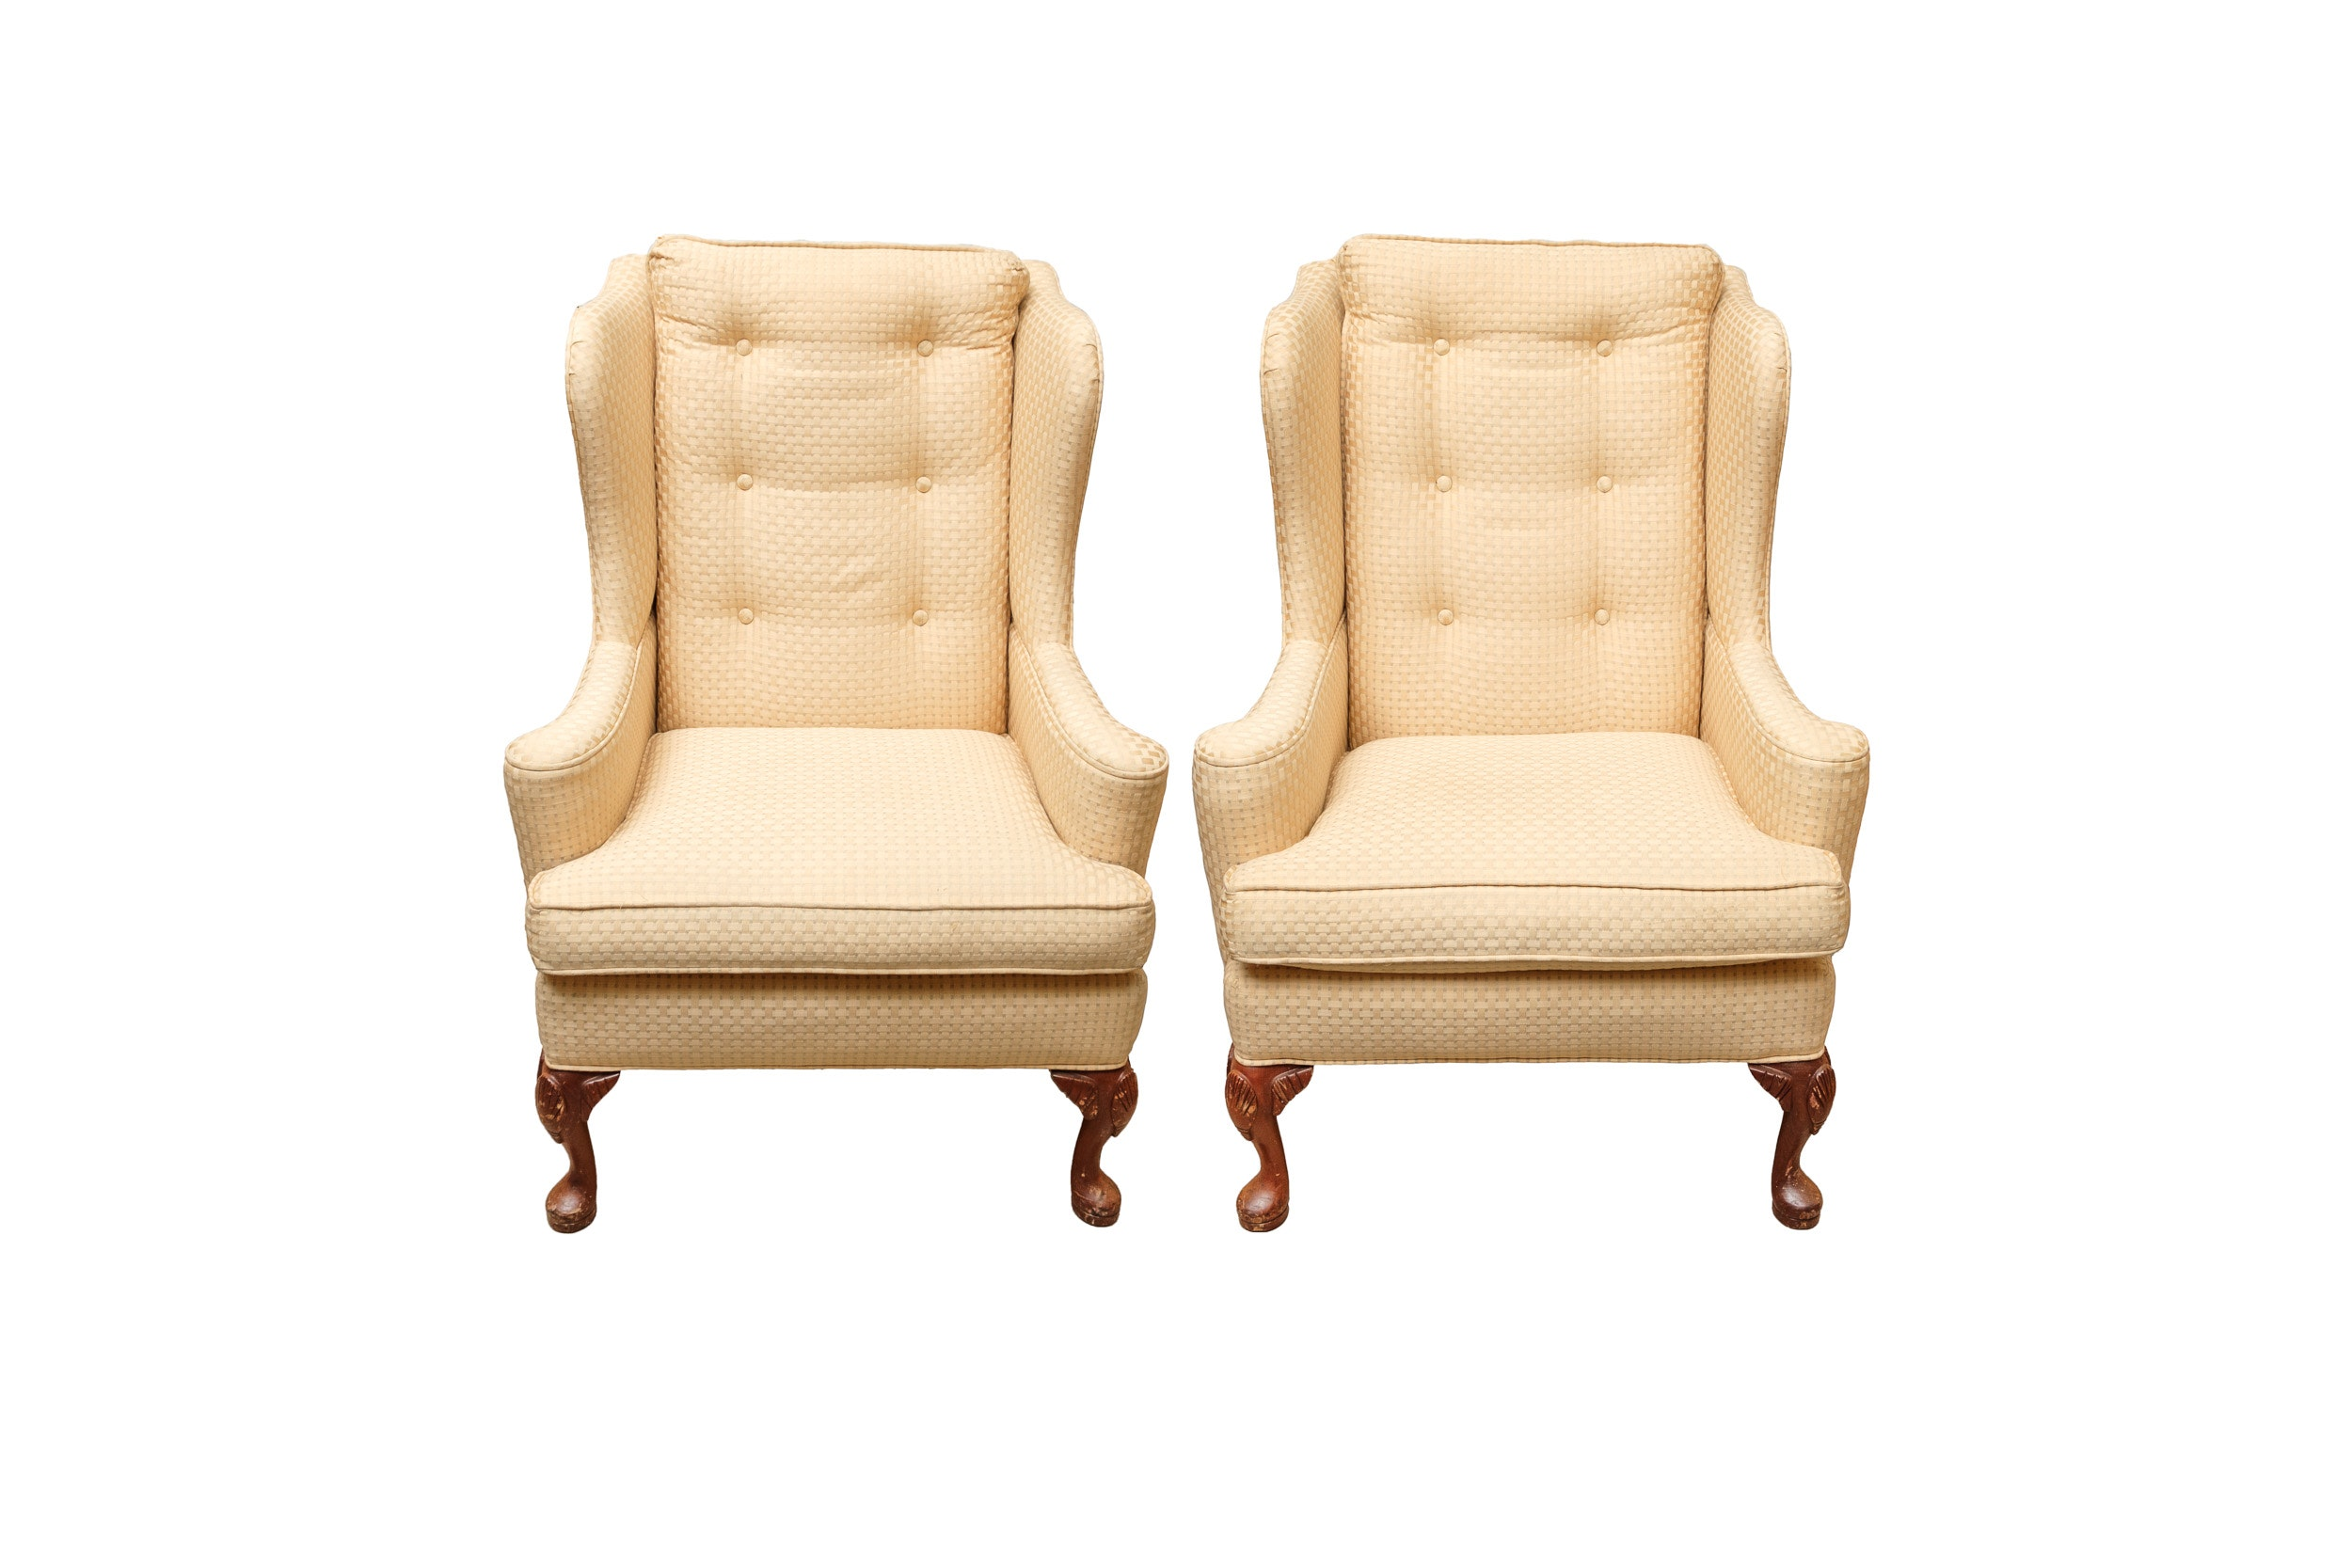 Pair of Queen Anne Style Upholstered Wingback Chairs